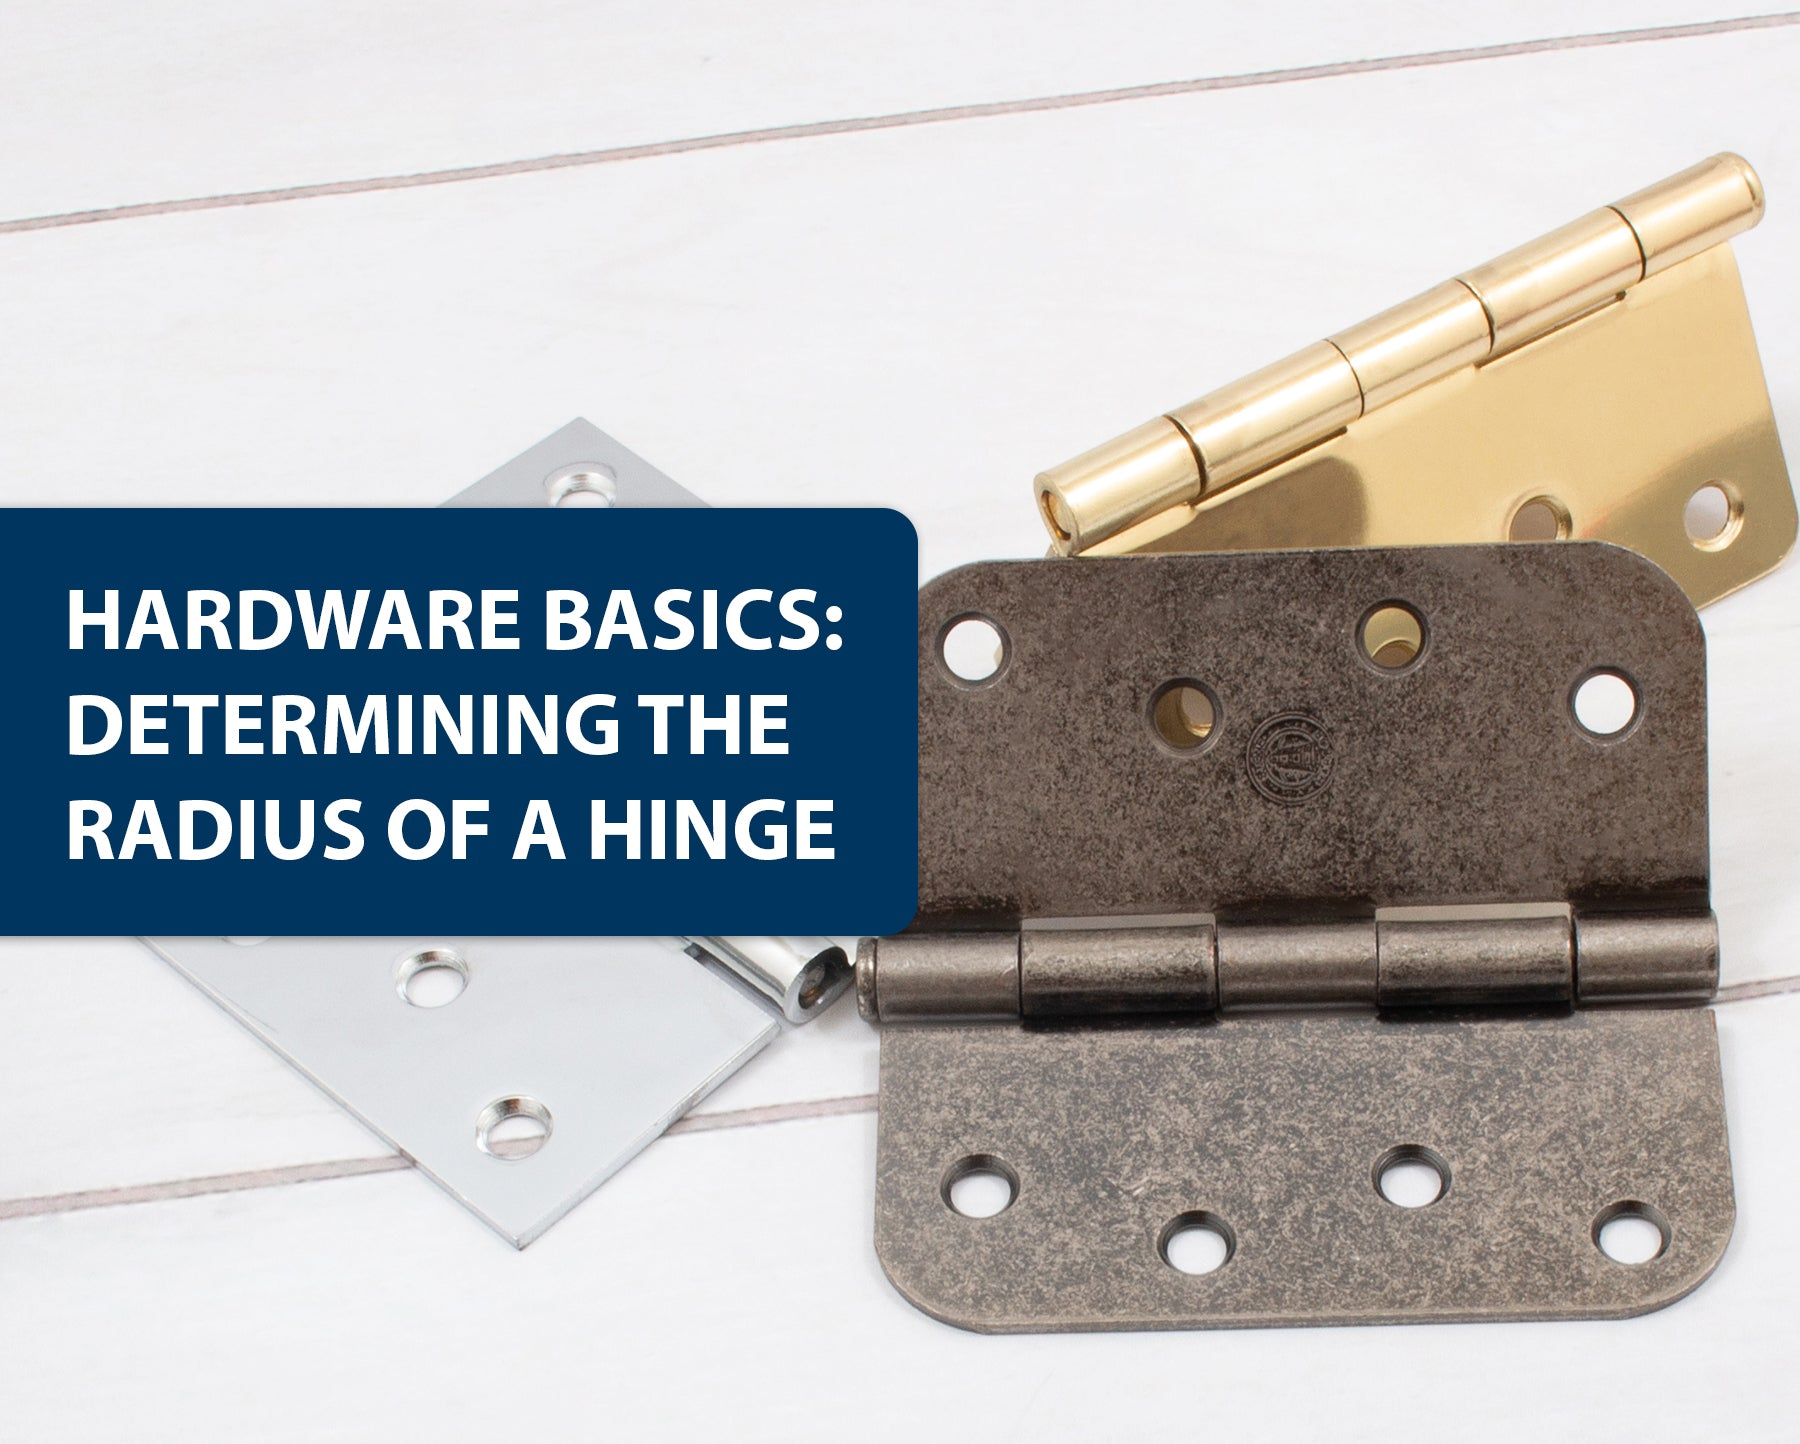 Hardware Basics: How to Determine the Radius of a Hinge